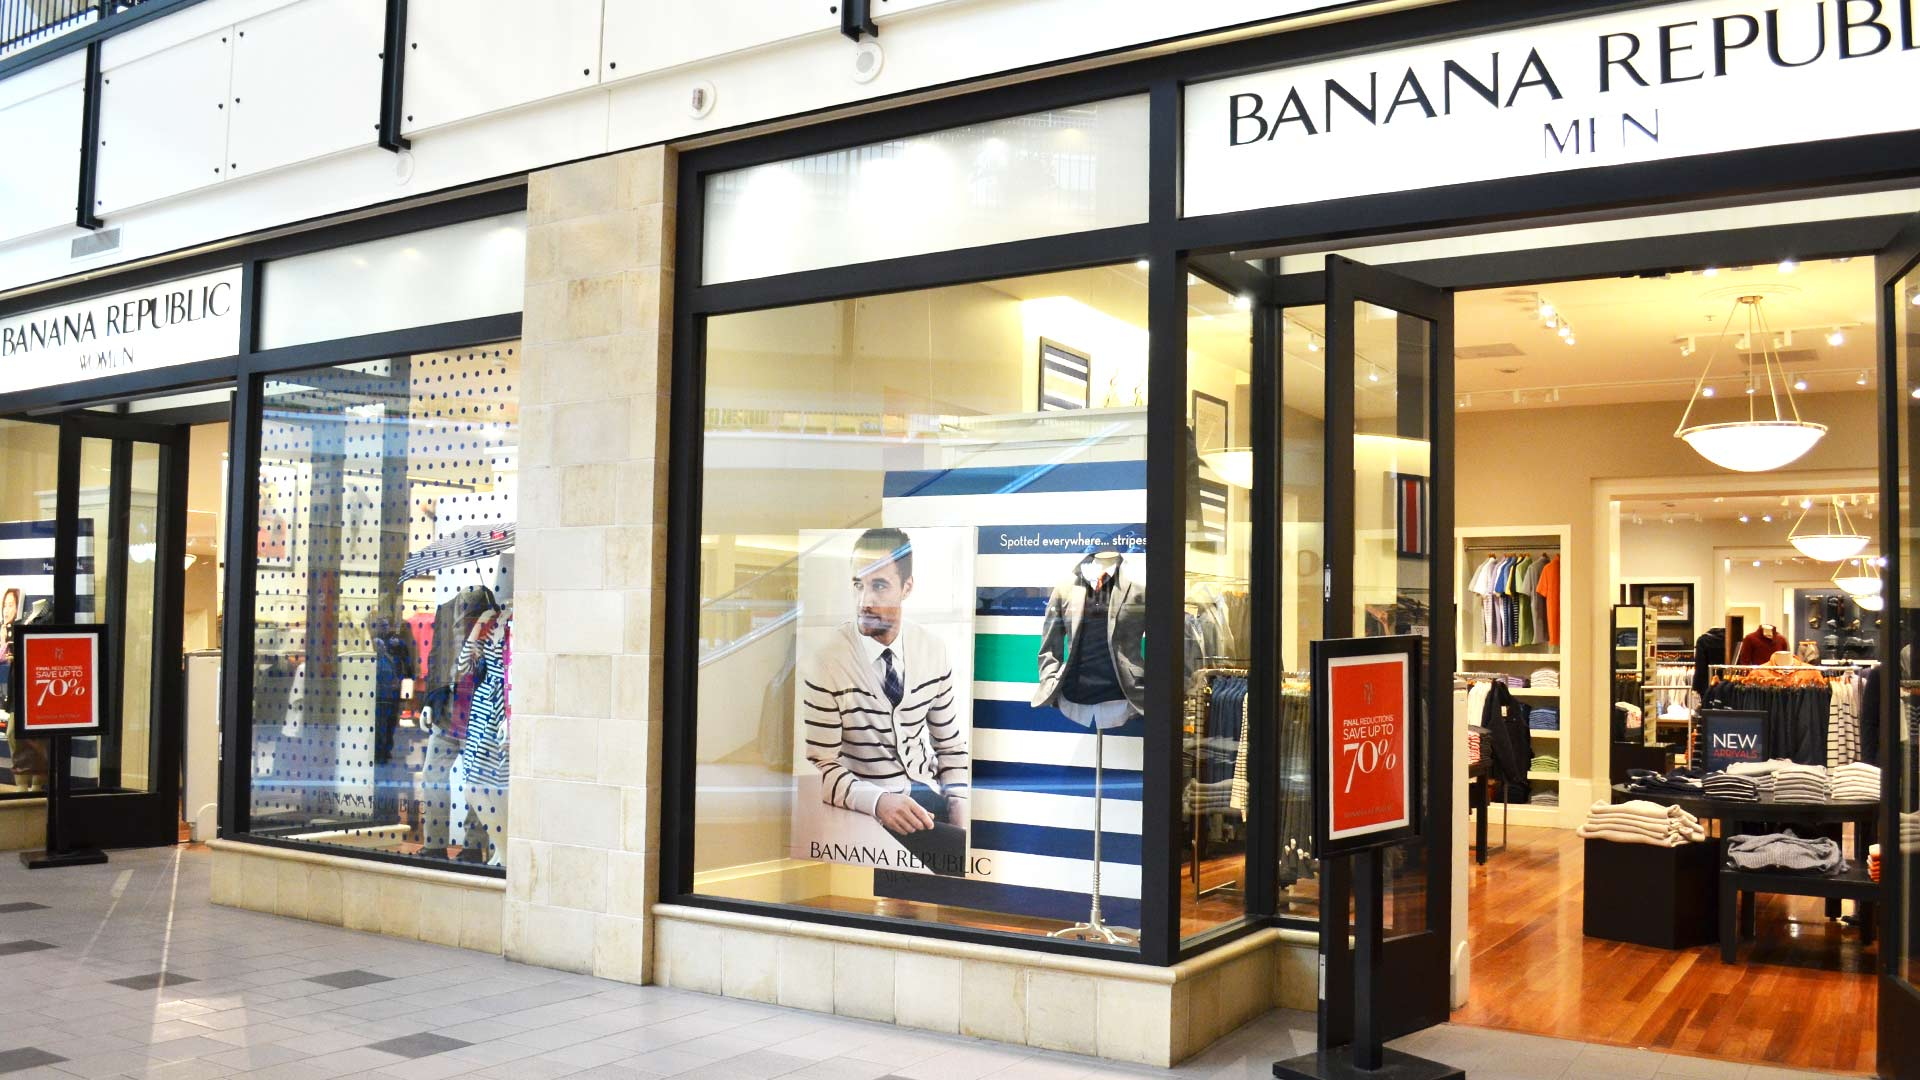 About Banana Republic. Banana Republic is an American clothing and accessories retailer owned by American multinational corporation, Gap Inc.